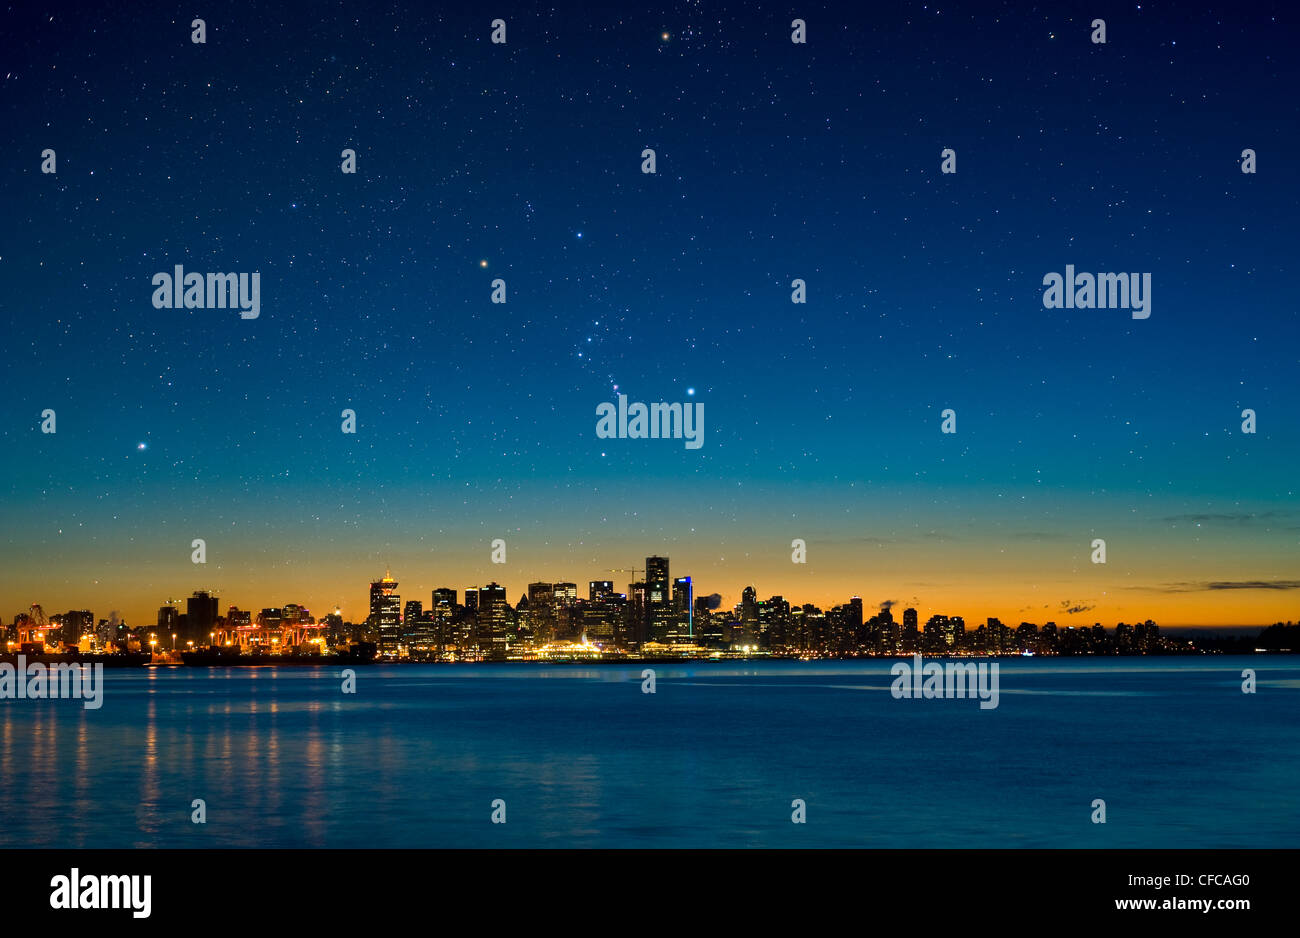 The constellation Orion setting over Vancouver skyline. - Stock Image